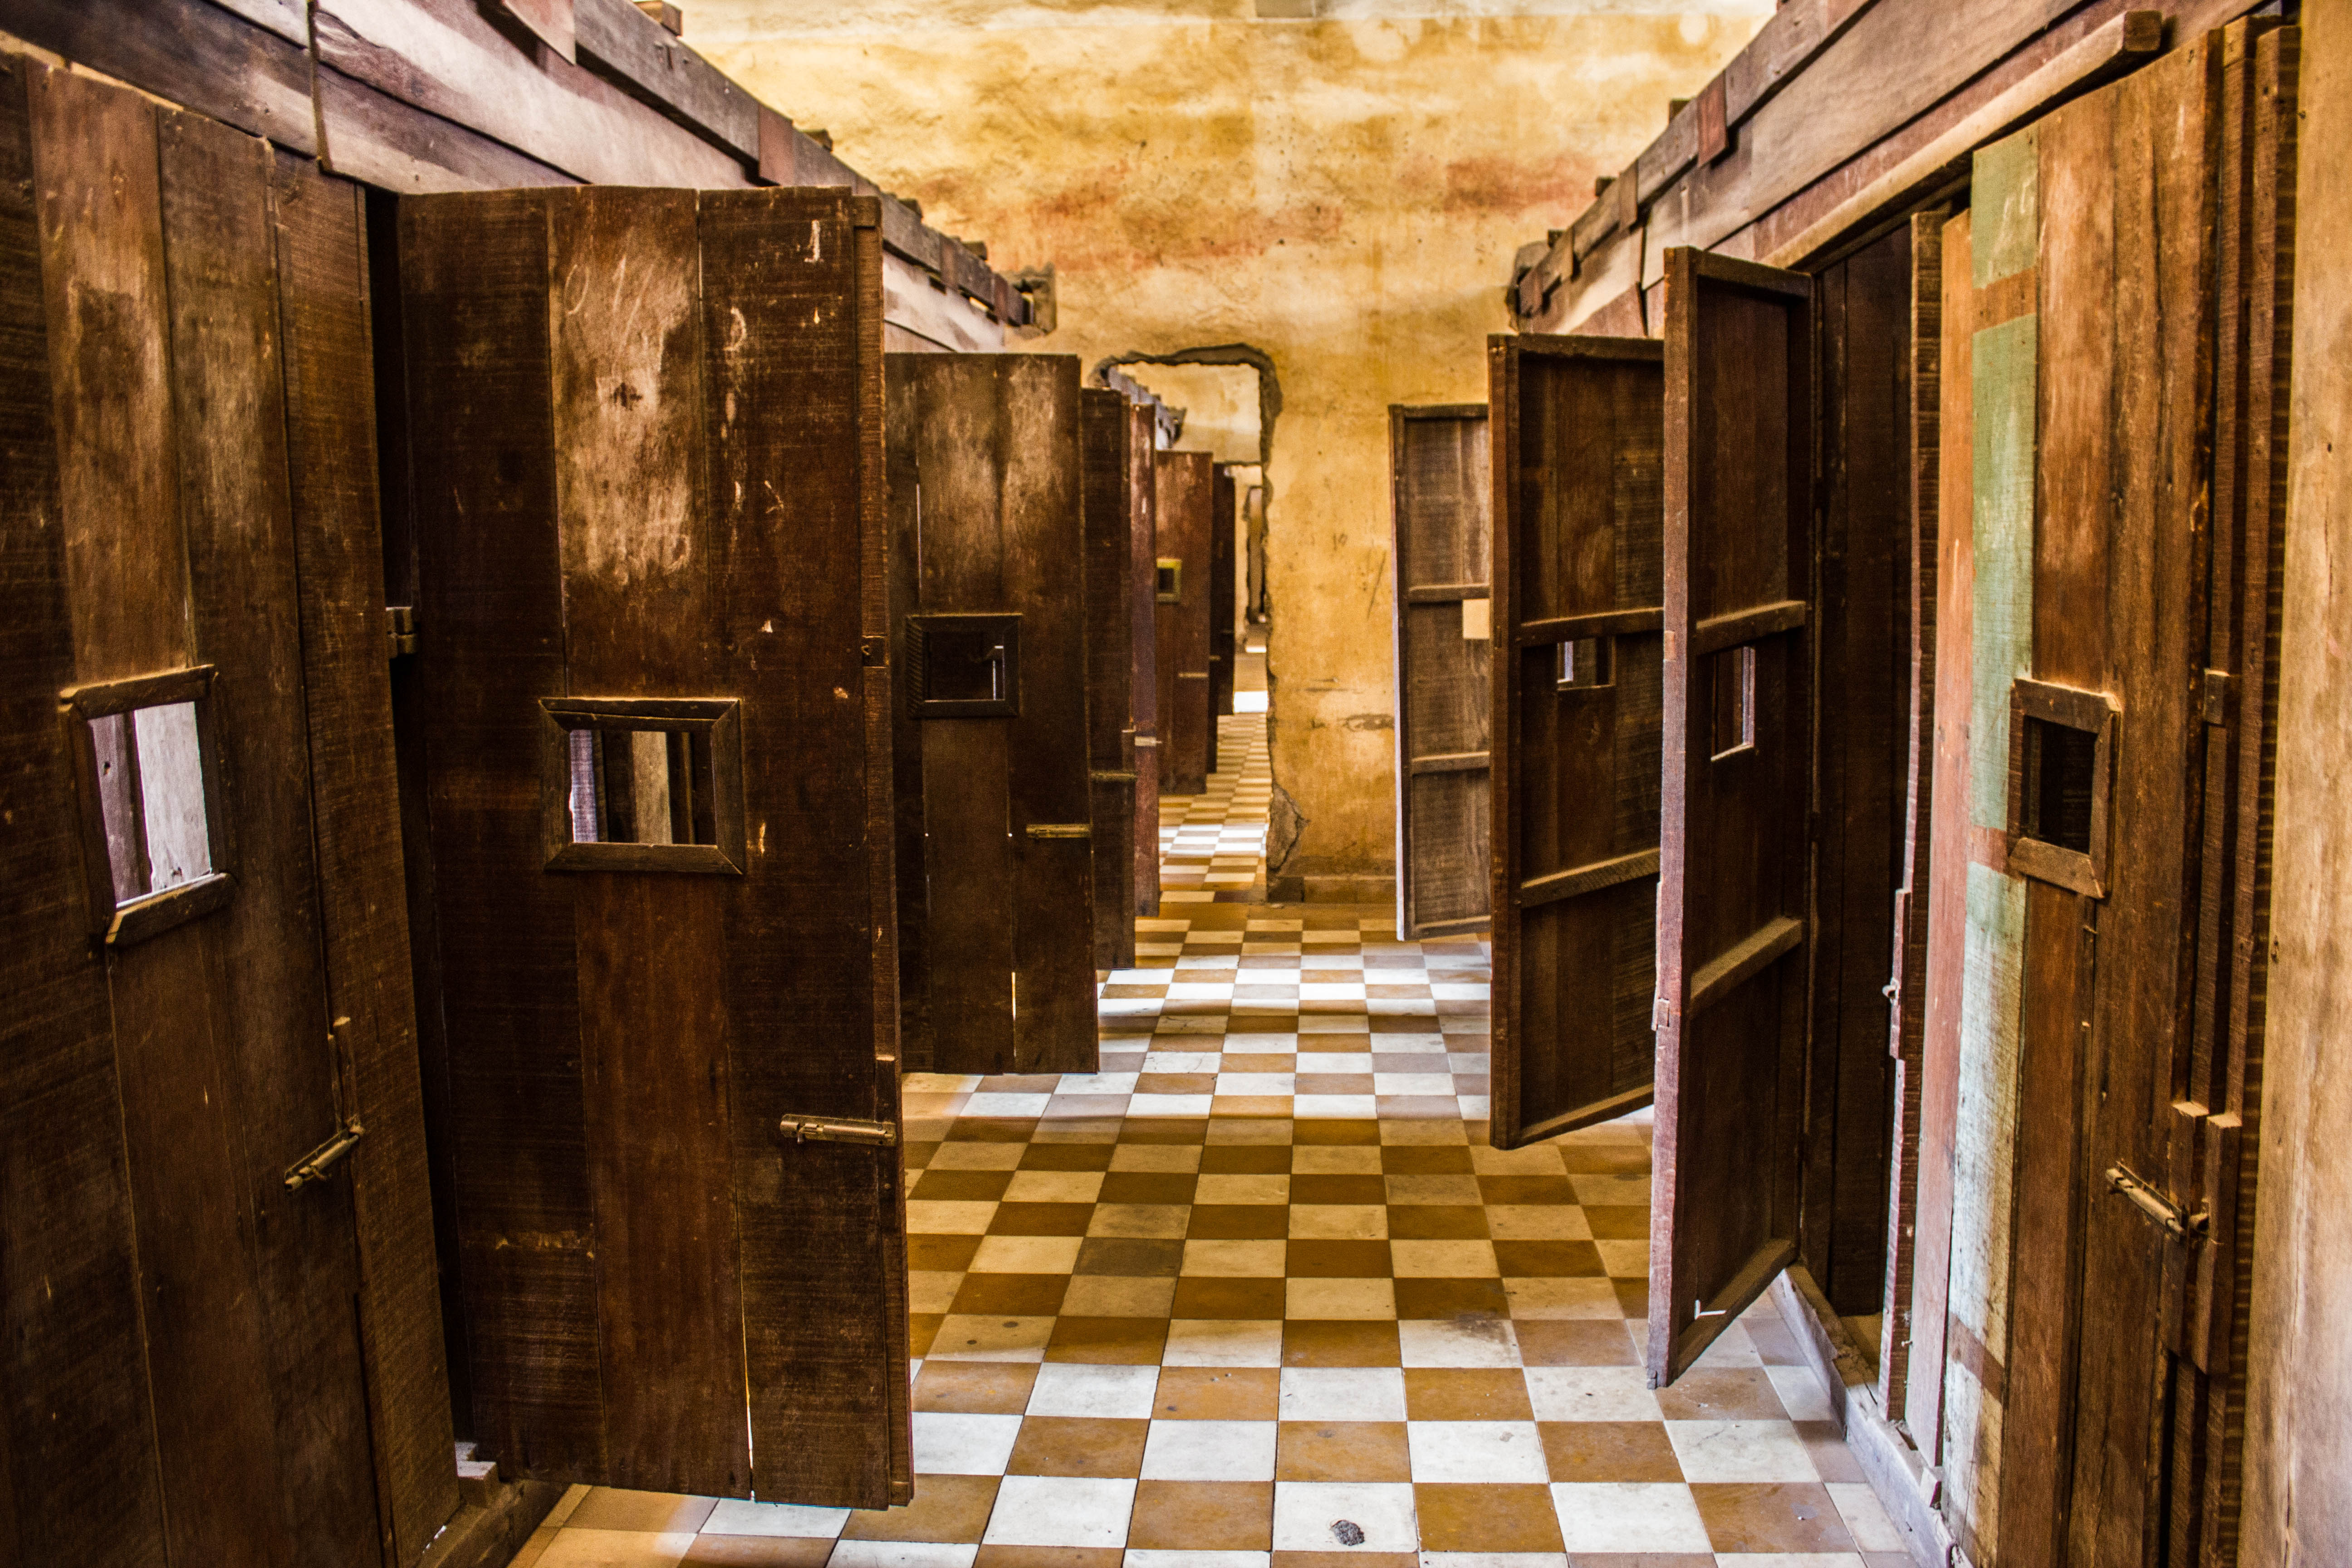 Tuol Sleng & The Killing Fields | Red, White & Lost